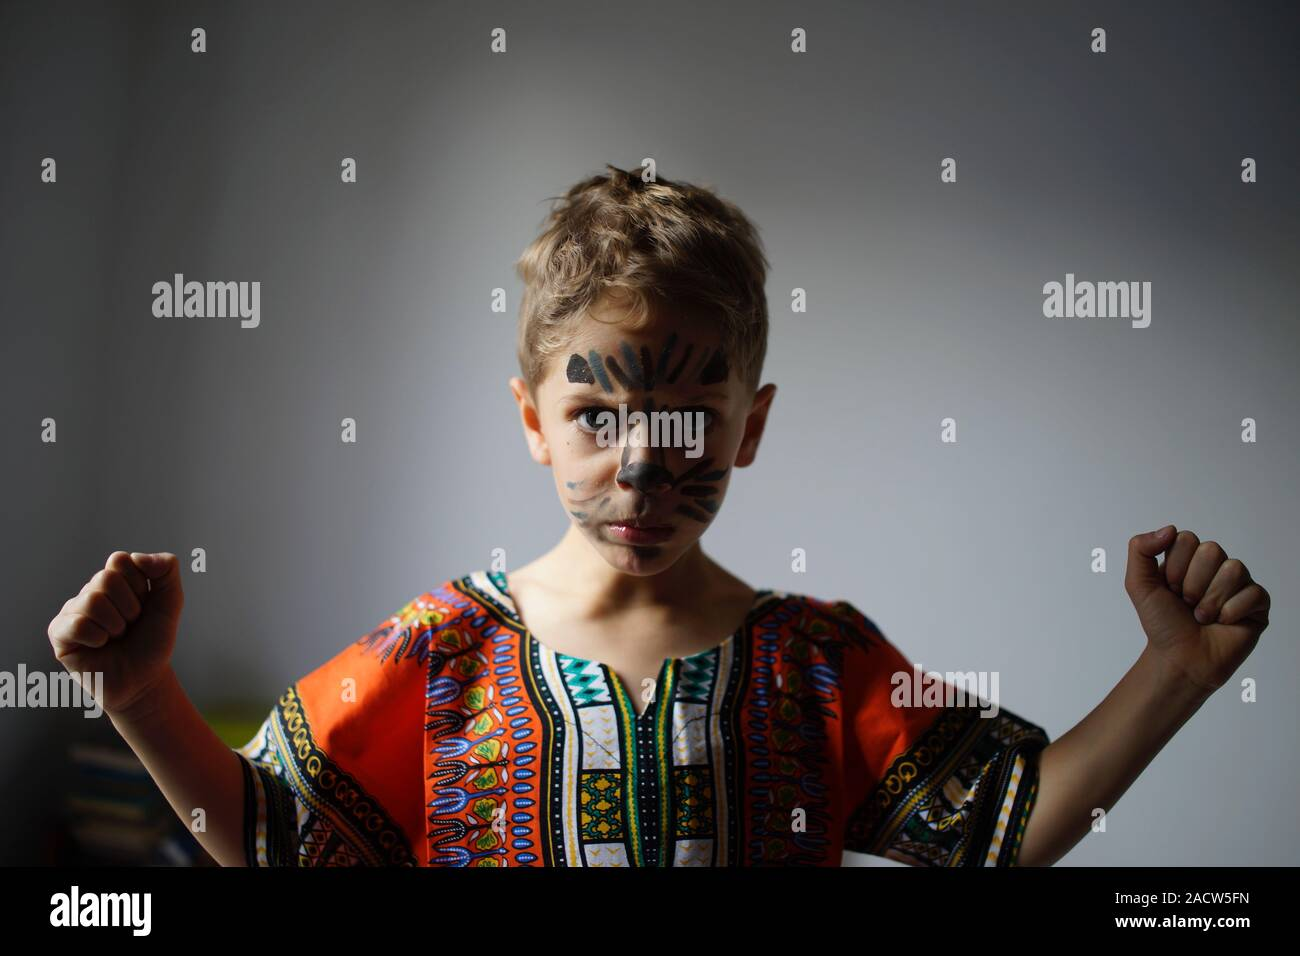 Boy with painted face and raised fists, raised wearing traditional African Dashiki shirt Stock Photo